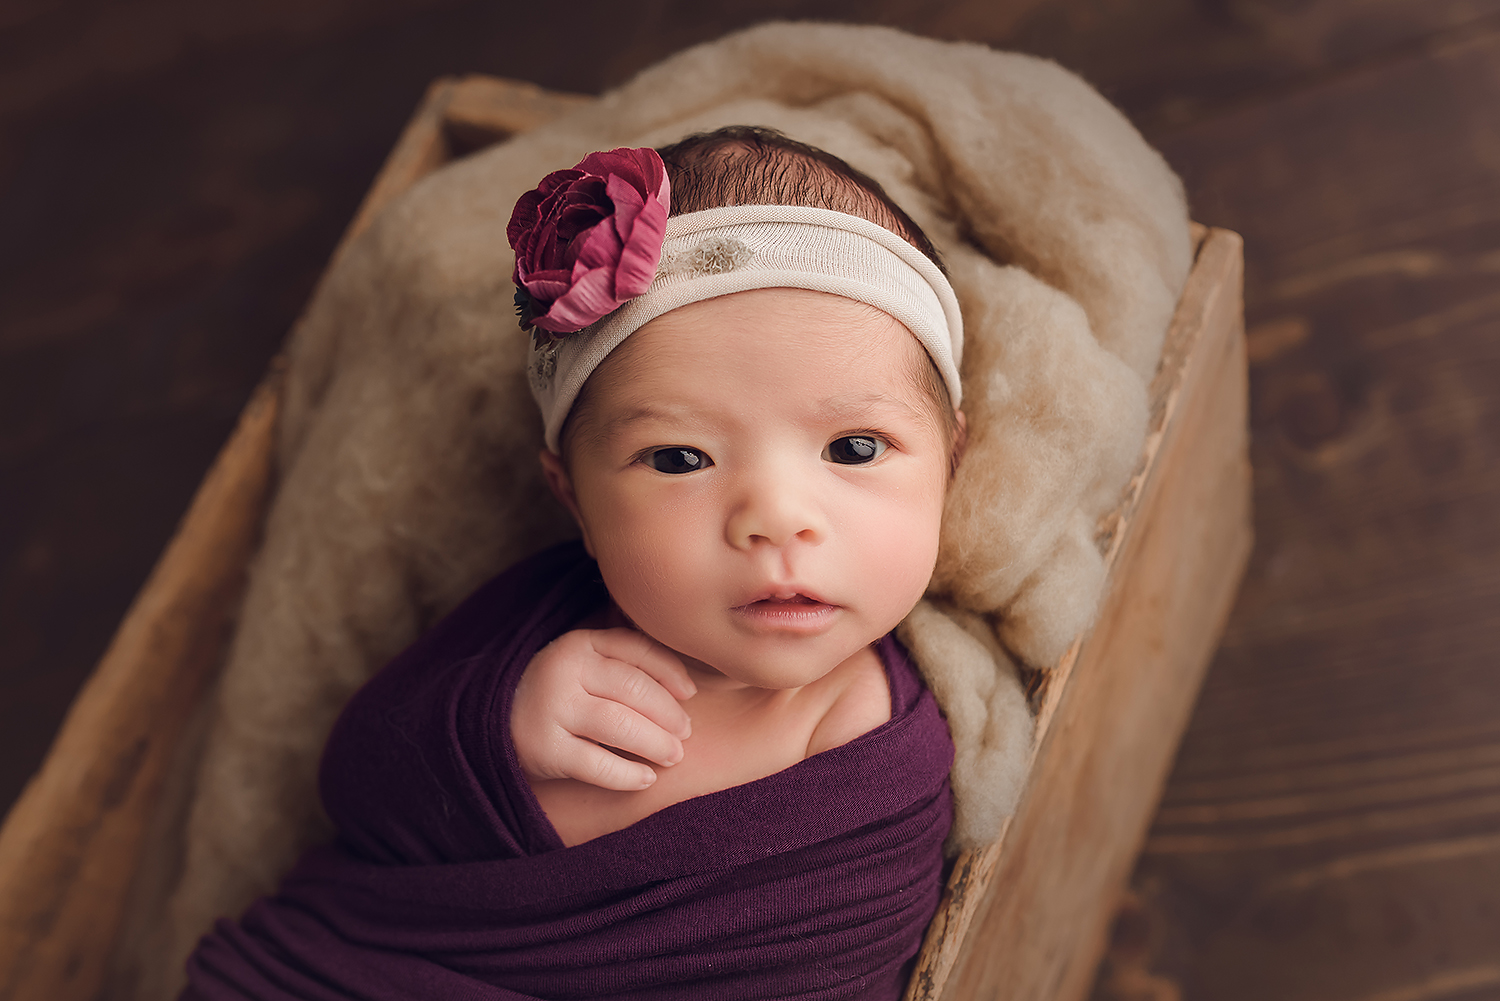 Baltimore Maryland Newborn Photographer Jessica Fenfert baby girl eyes open purple wrap